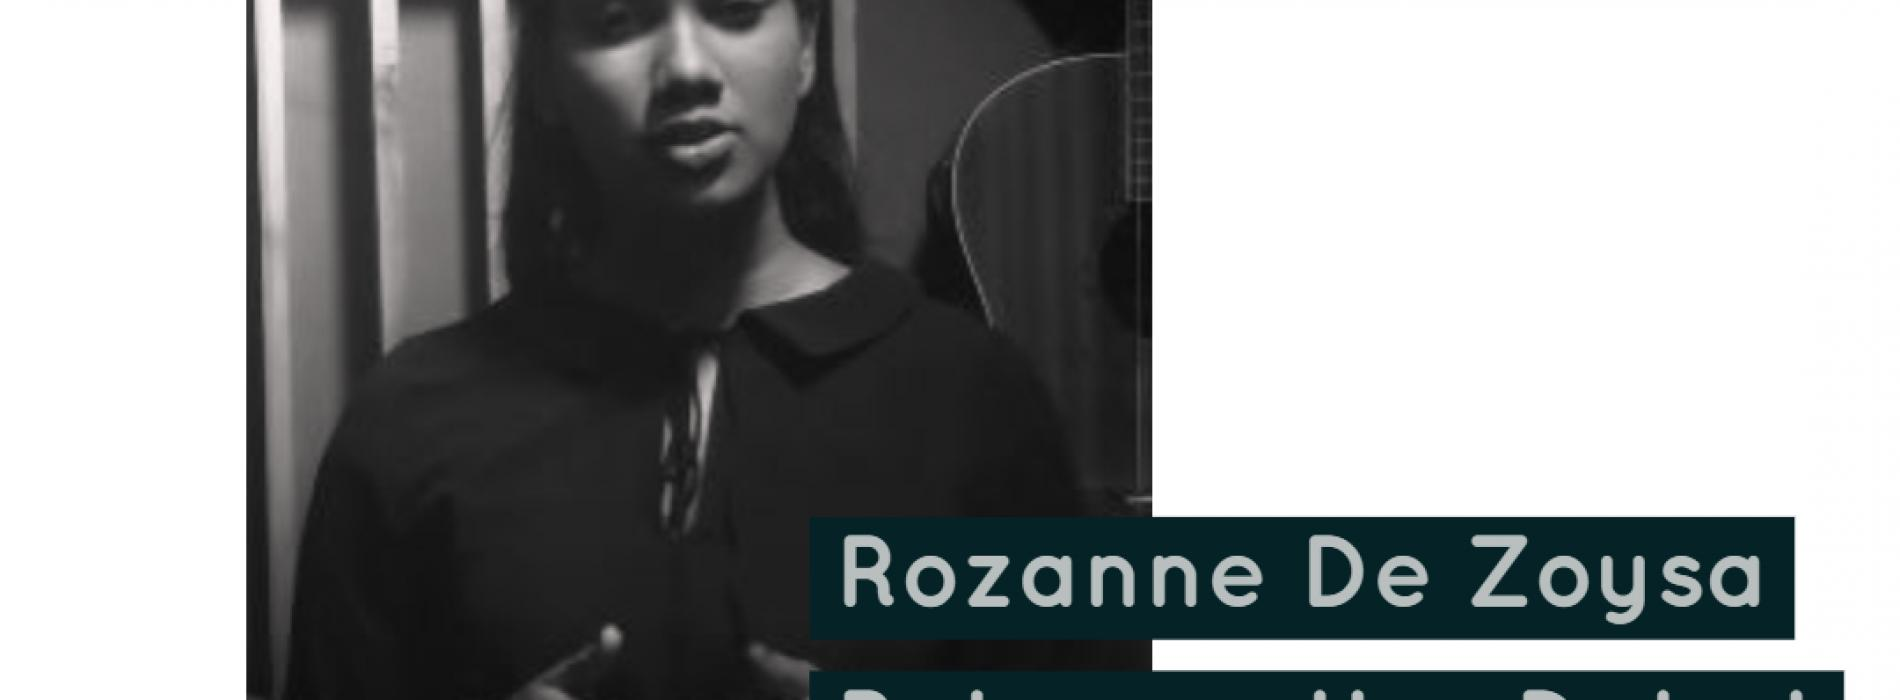 Rozanne De Zoysa – Faded (Acoustic Cover)